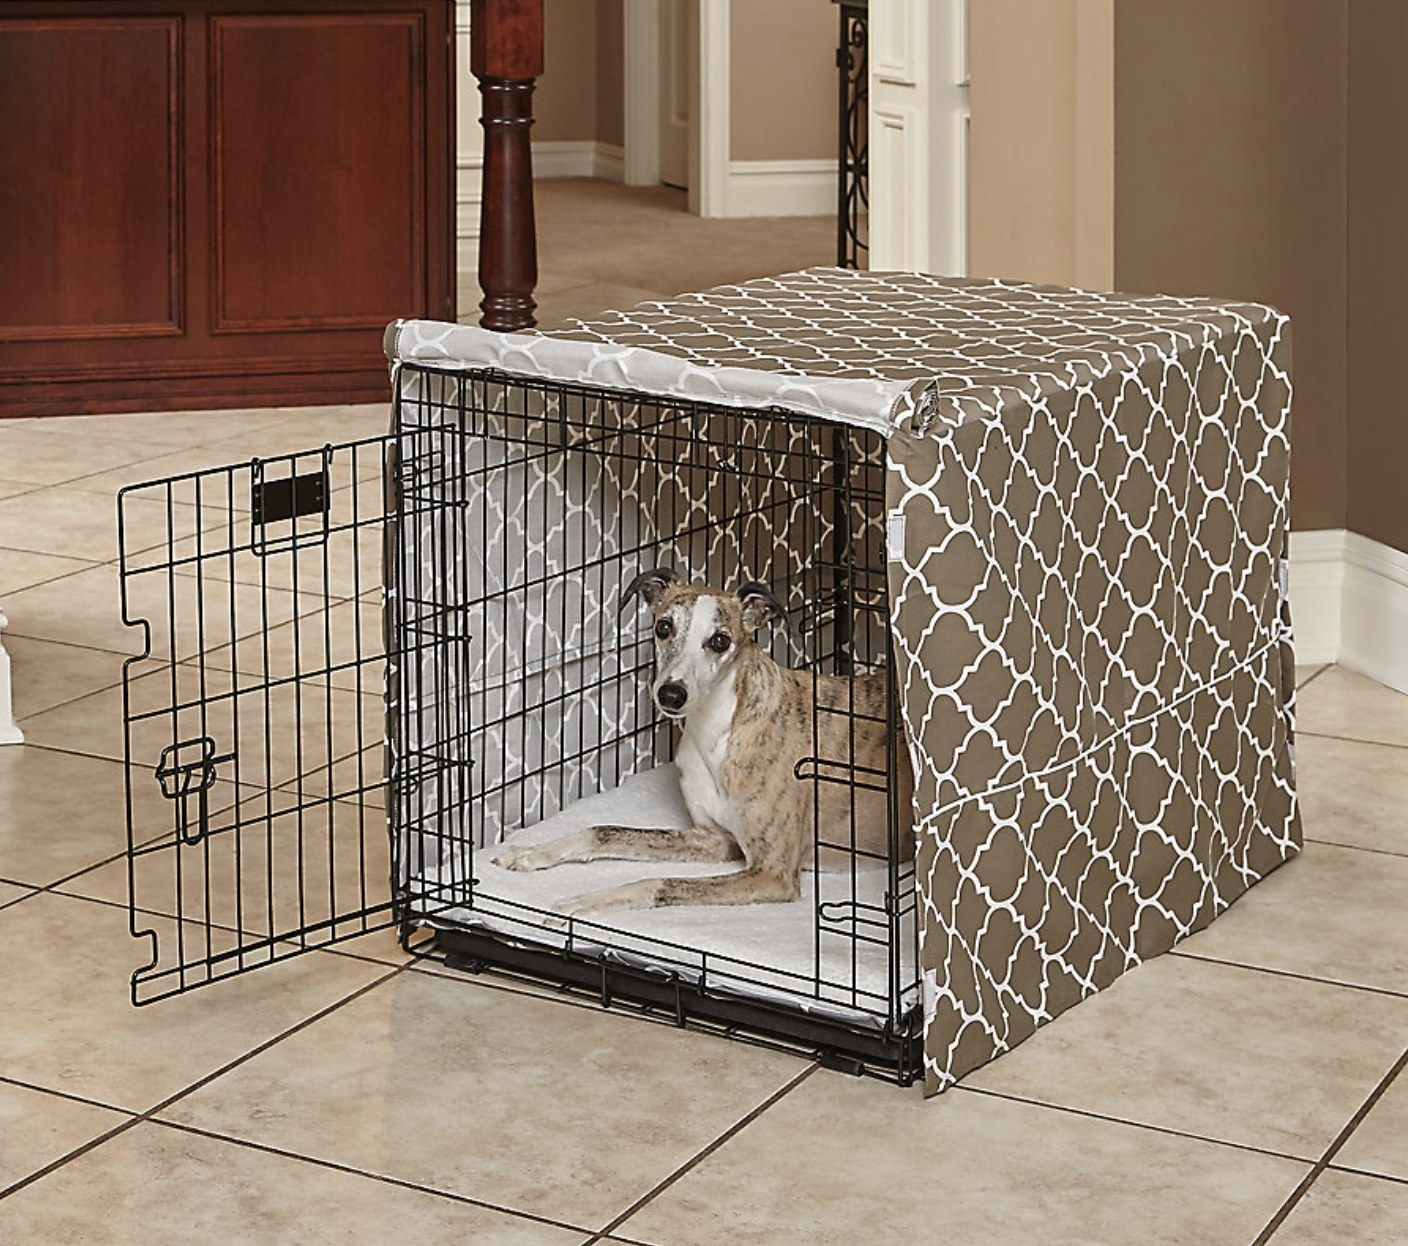 The crate cover in a geometric pattern